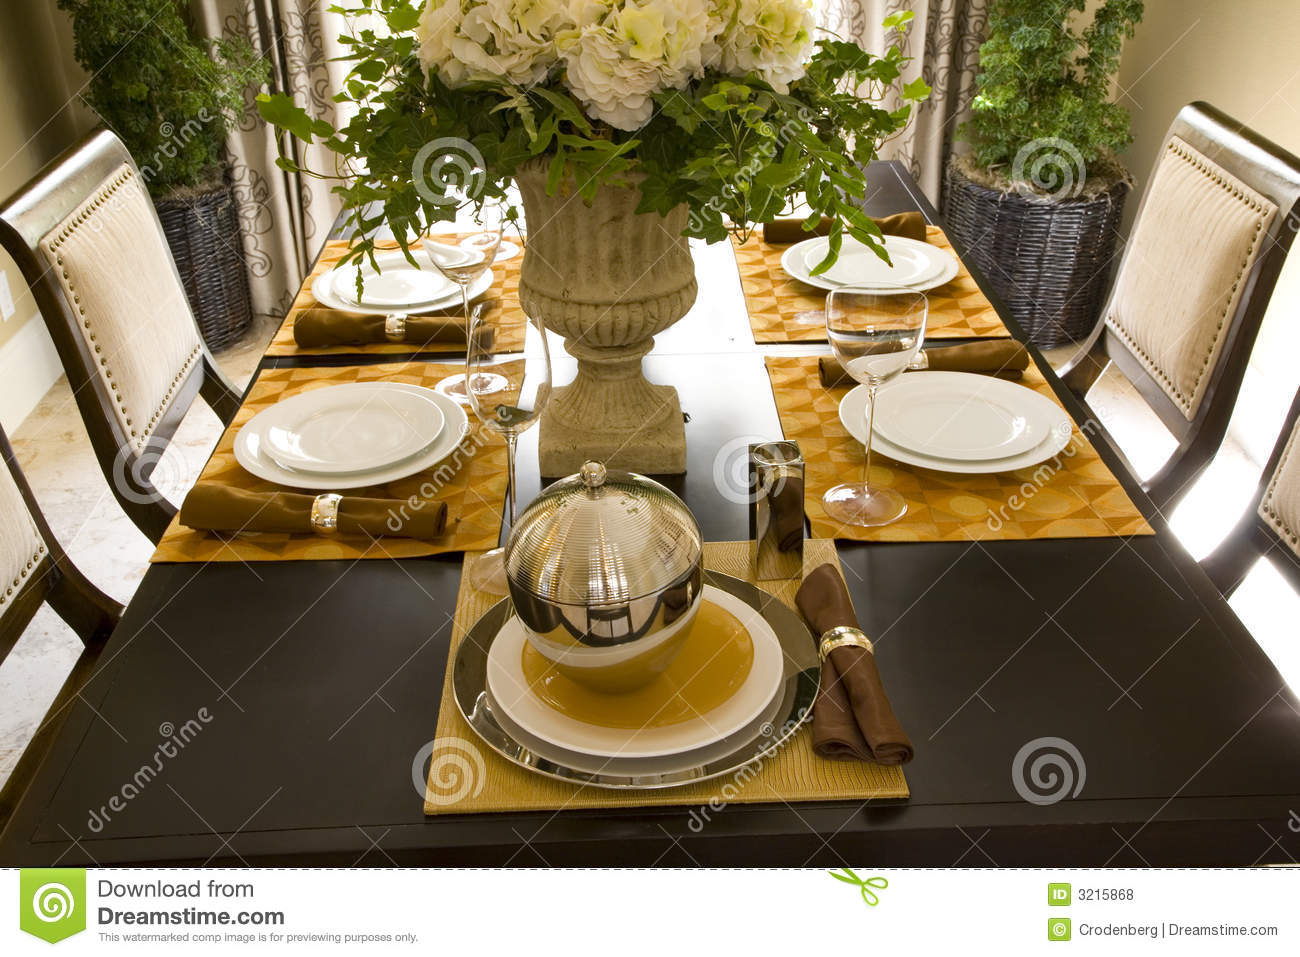 Dining table decor royalty free stock photos image